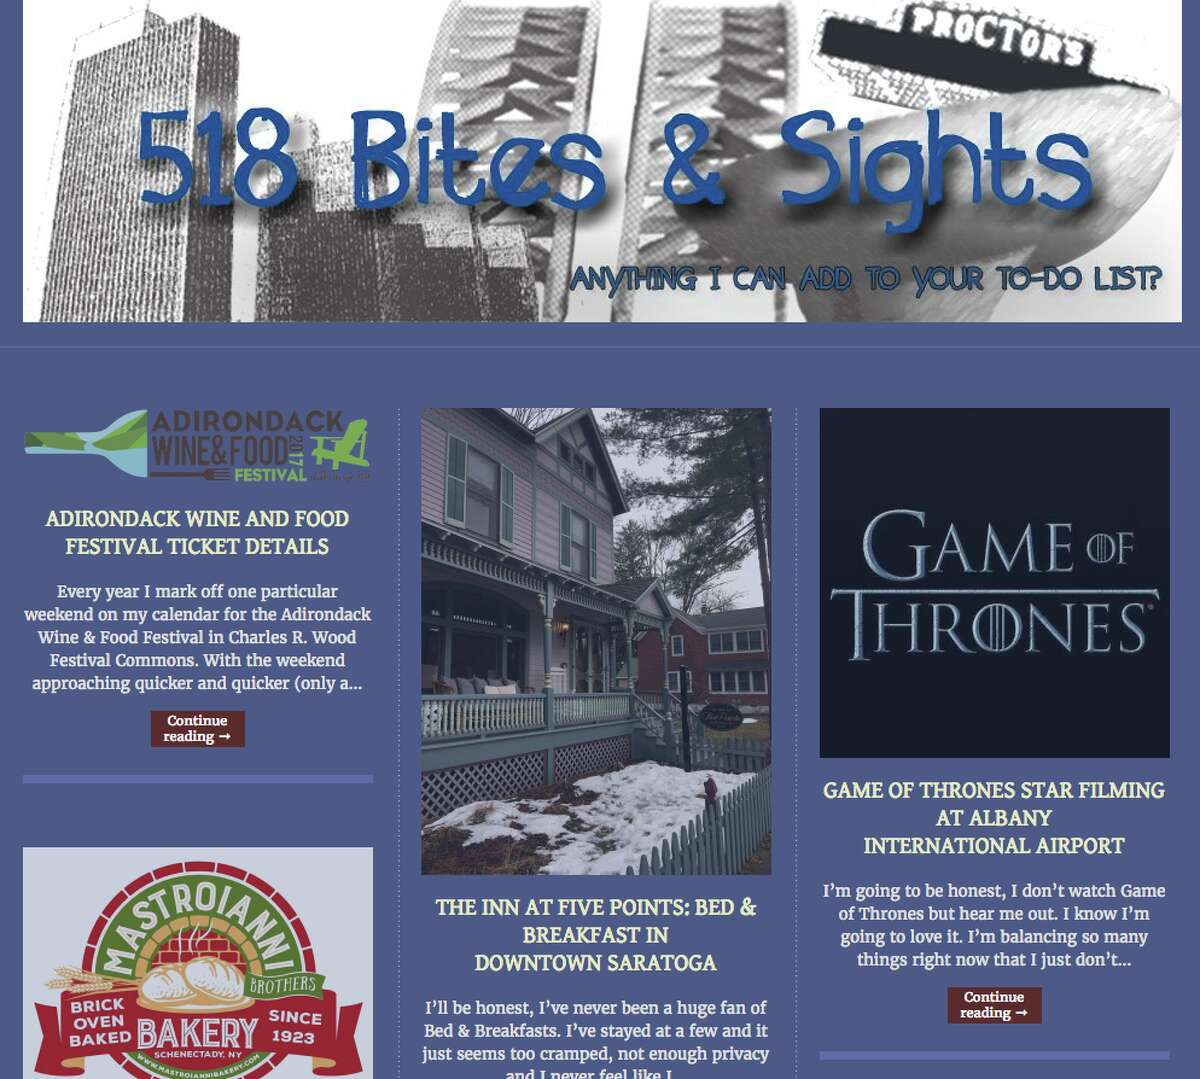 1. In my free time, I write a local blog about my Capital Region experiences called 518 Bites & Sights.